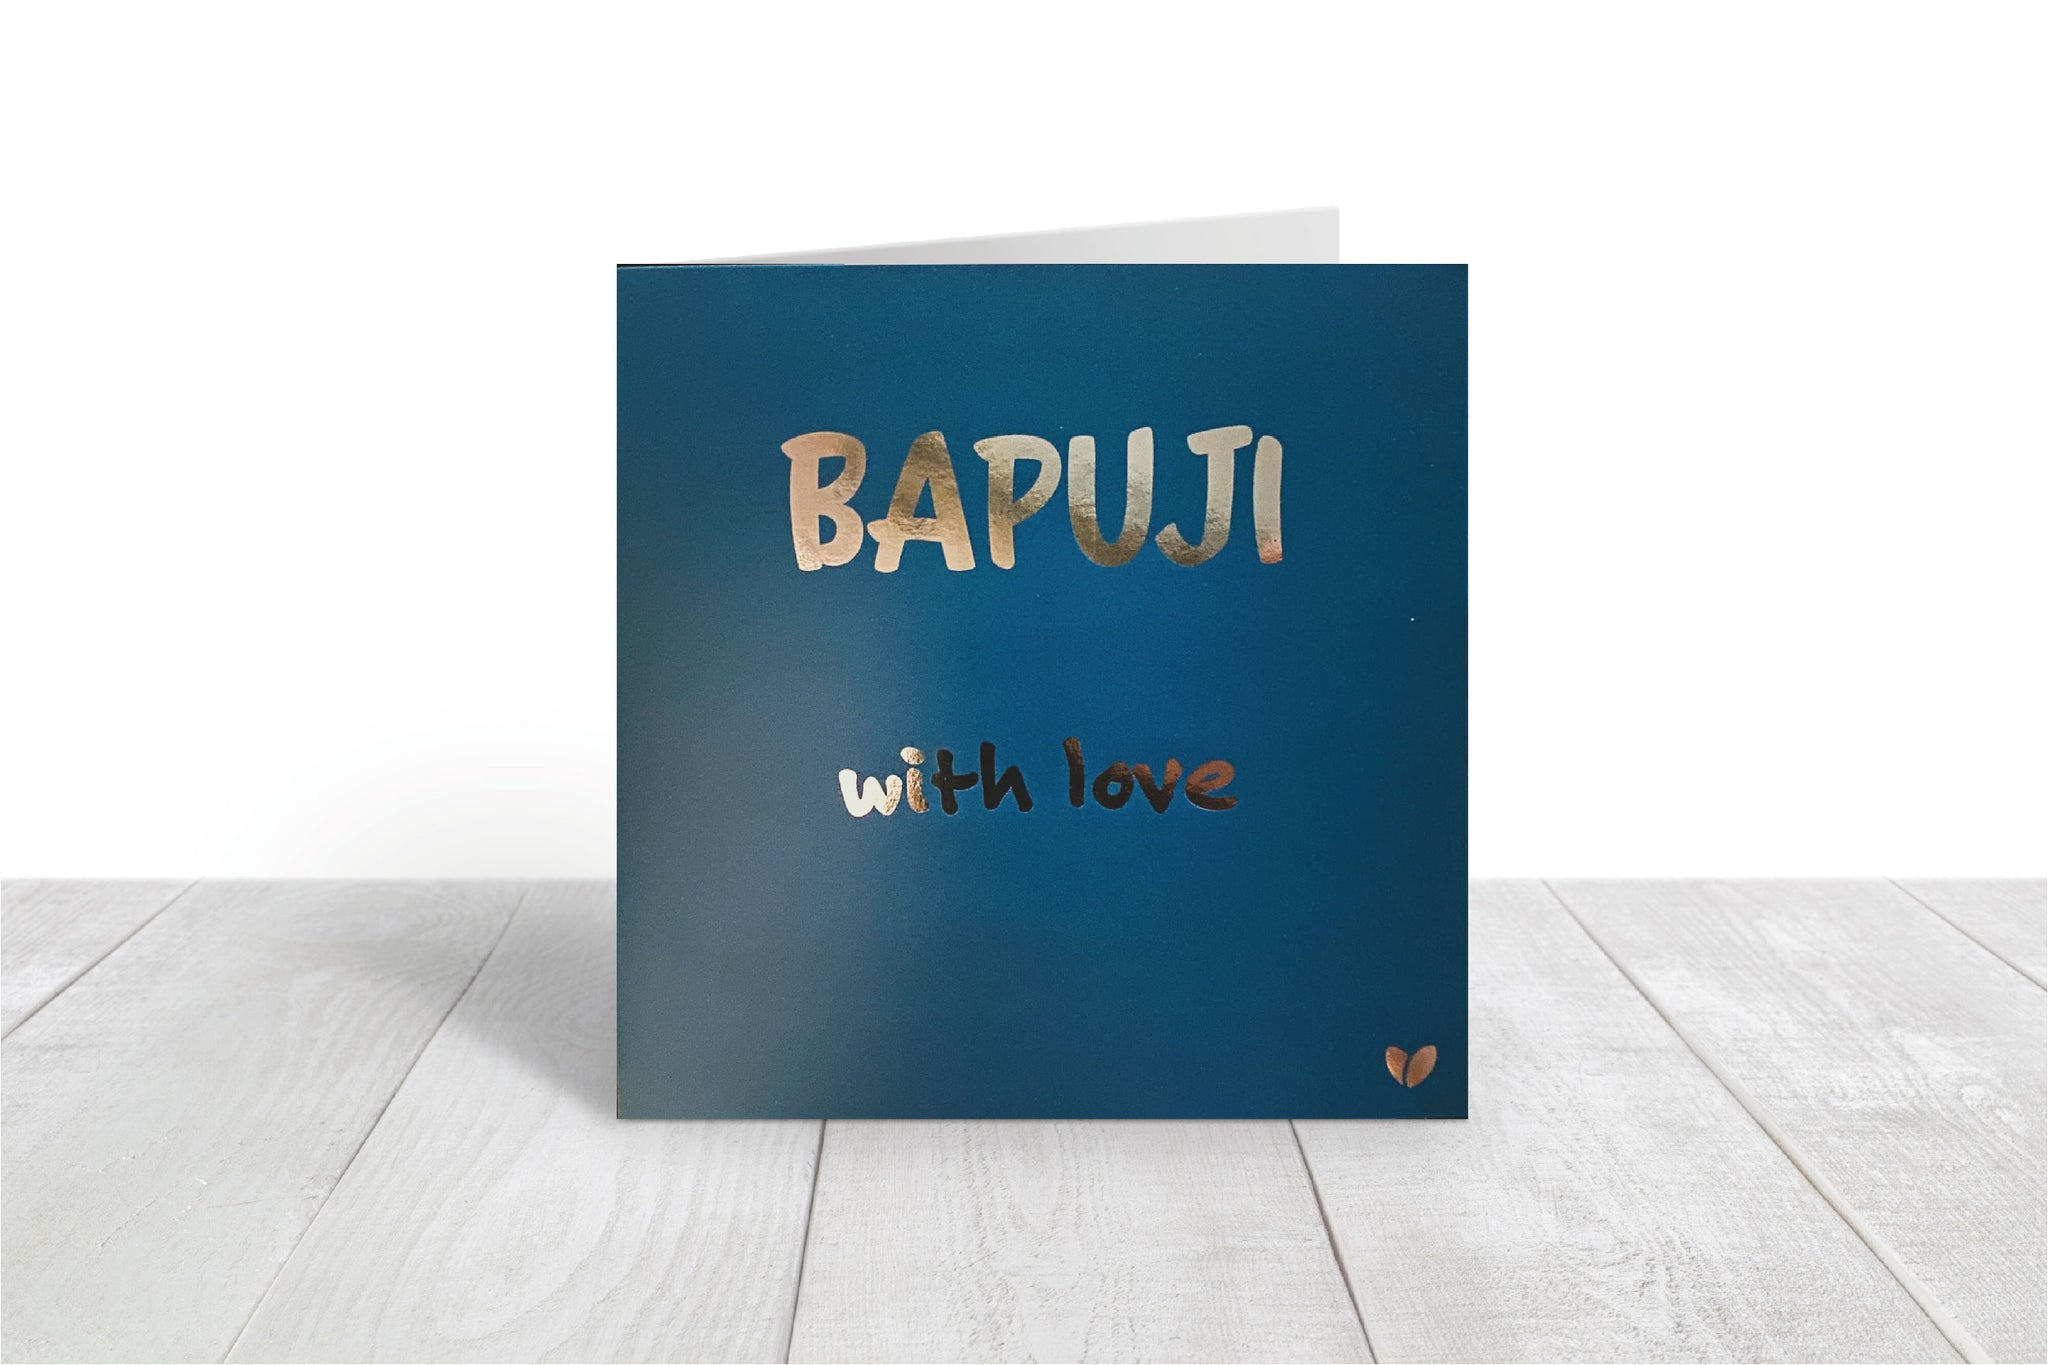 Bapuji, with love greeting card